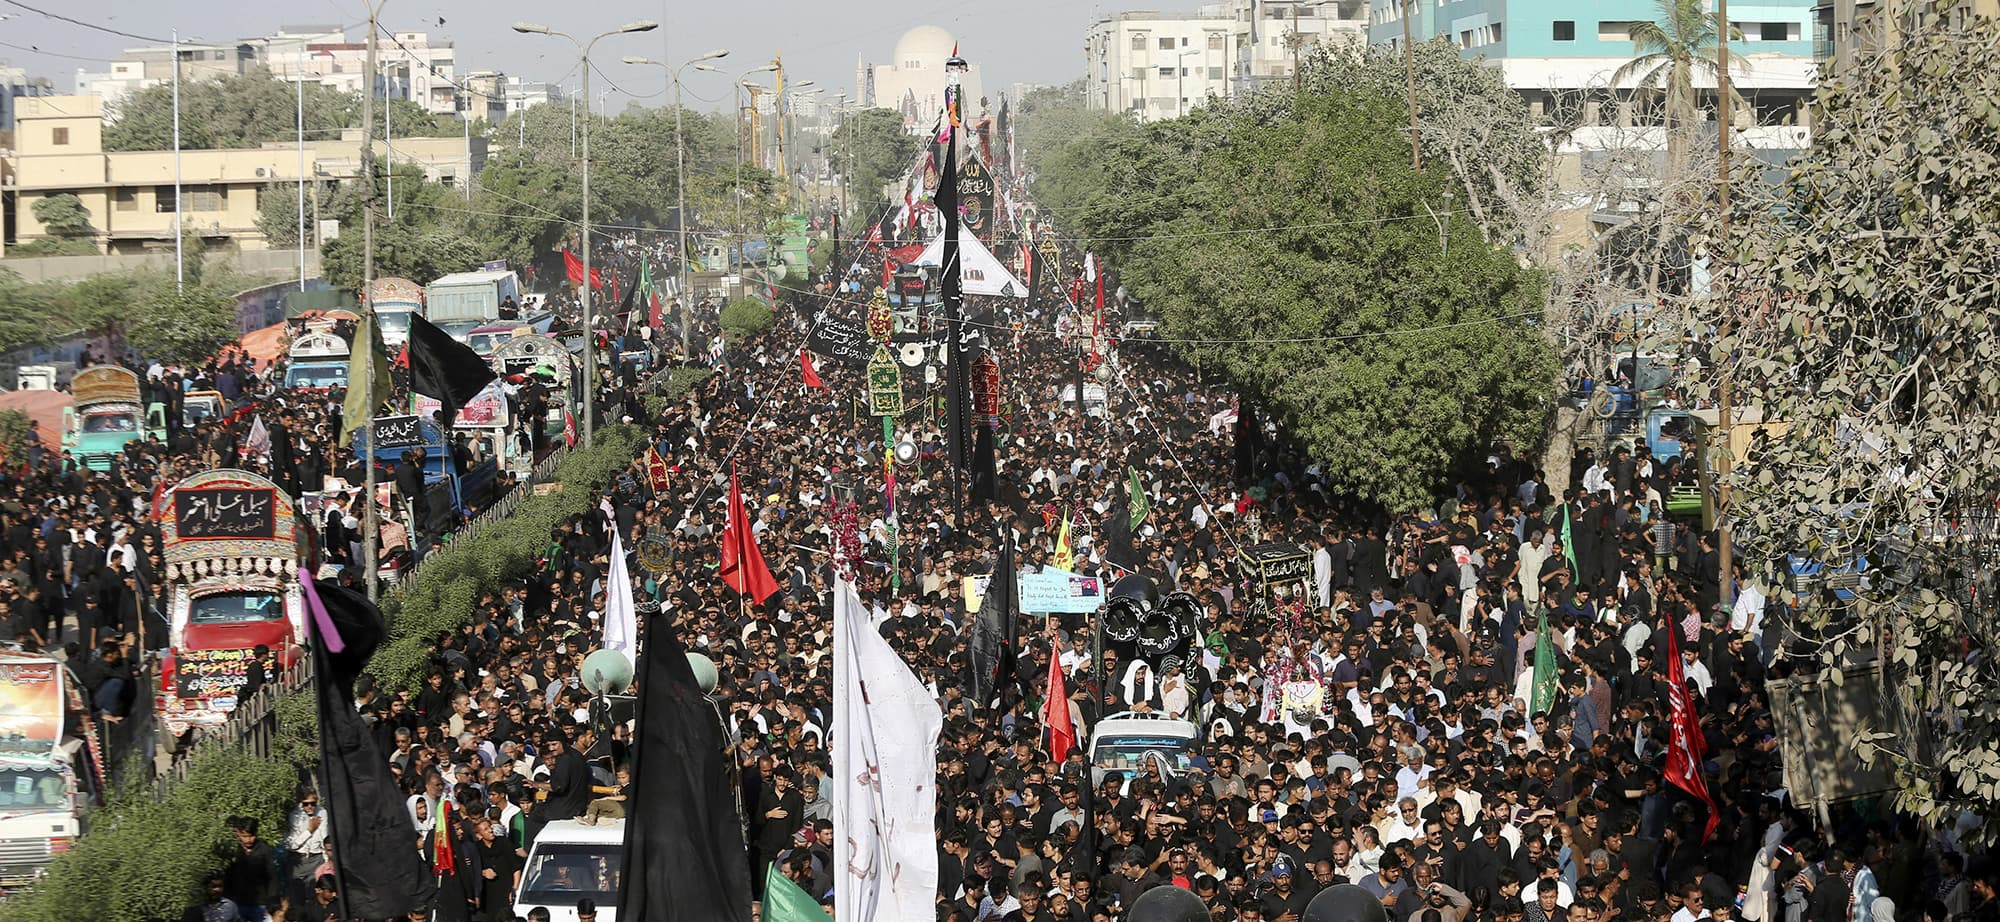 Pakistani Shiite Muslims attend a procession to mark the end of the forty day mourning period following the anniversary of the 7th century death of Imam Hussein, the Prophet Muhammad's grandson and one of Shiite Islam's most beloved saints, in Karachi, Pakistan, Tuesday, Oct. 30, 2018. (AP Photo/Shakil Adil) — Copyright 2018 The Associated Press. All rights reserved